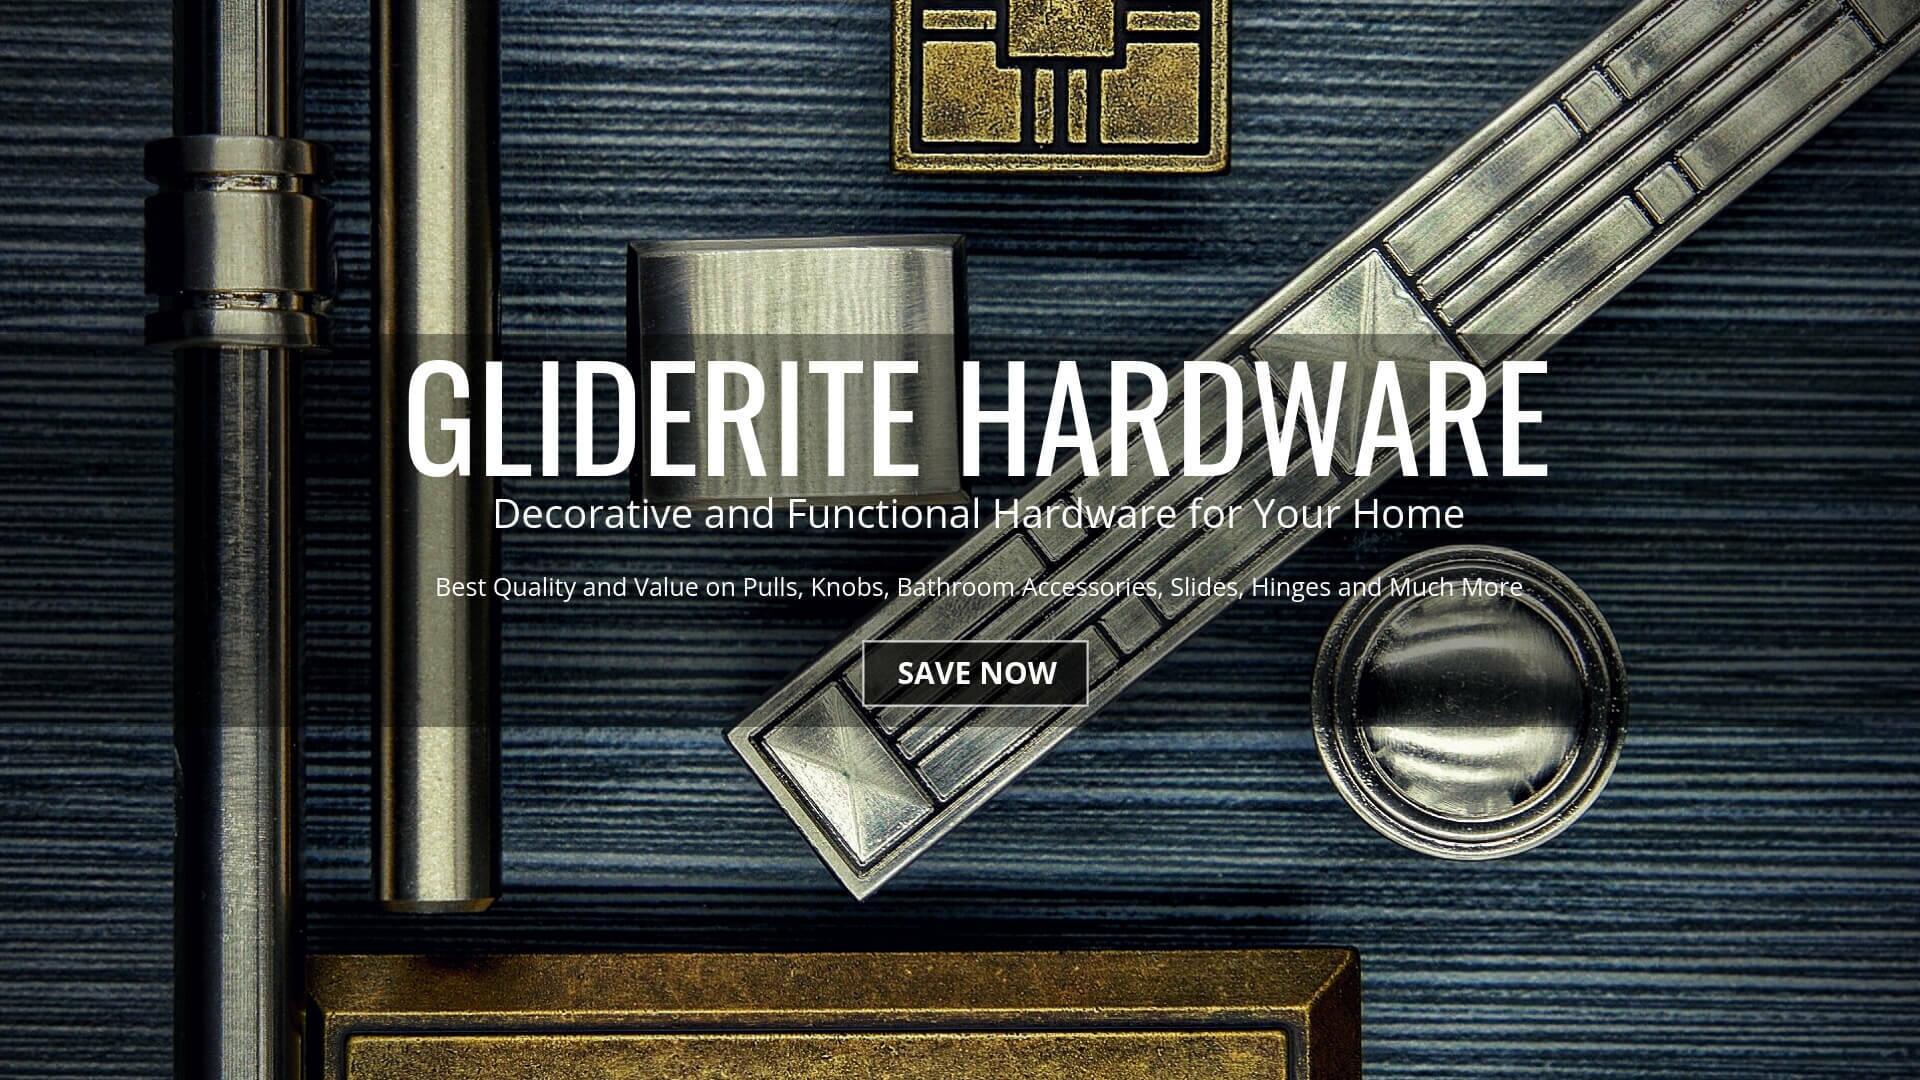 GlideRite Hardware Decorative Pulls and Knobs